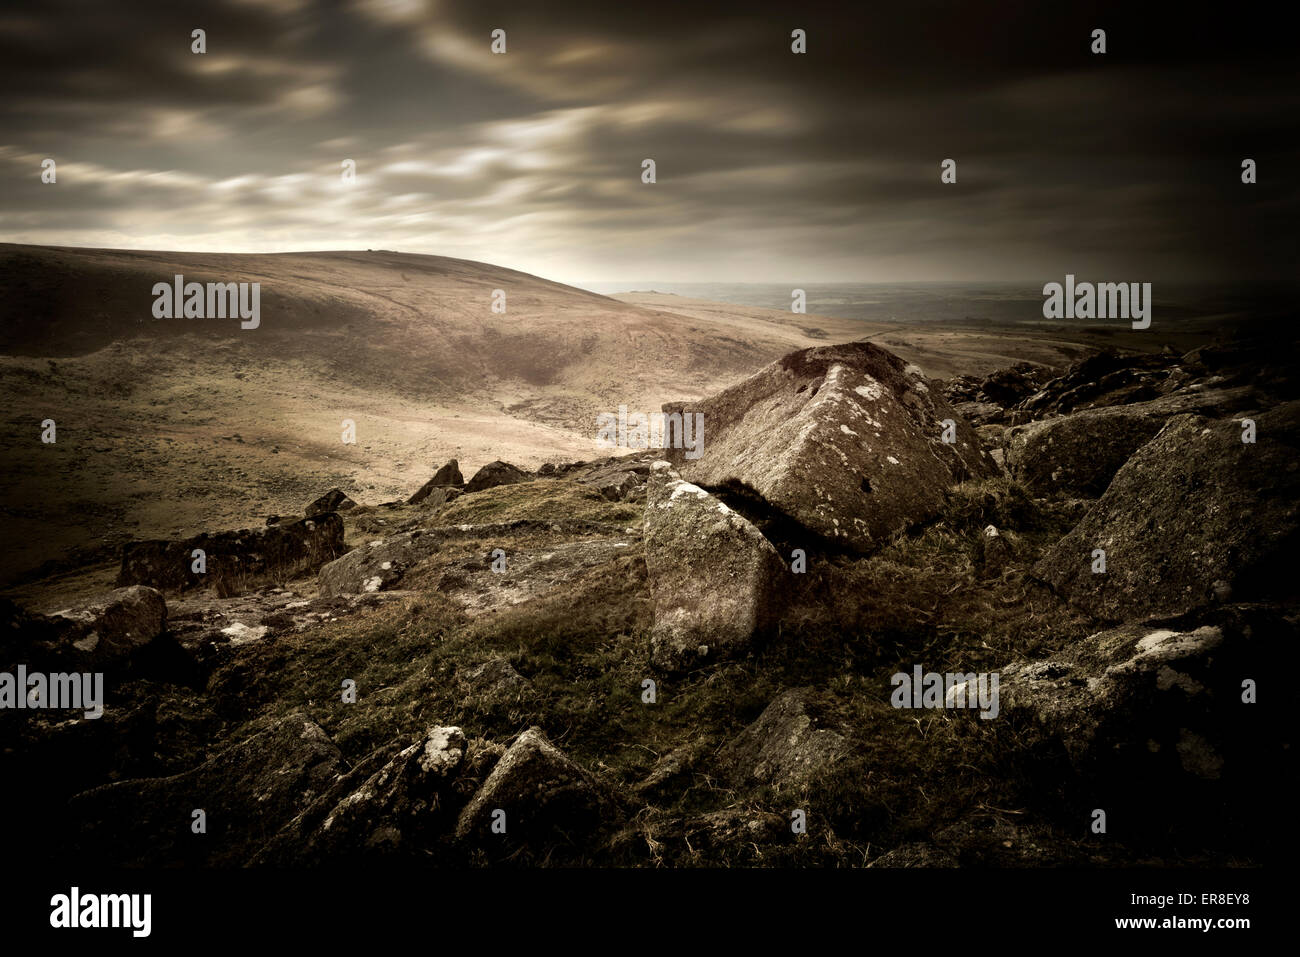 A dark and moody Moorland landscape. - Stock Image